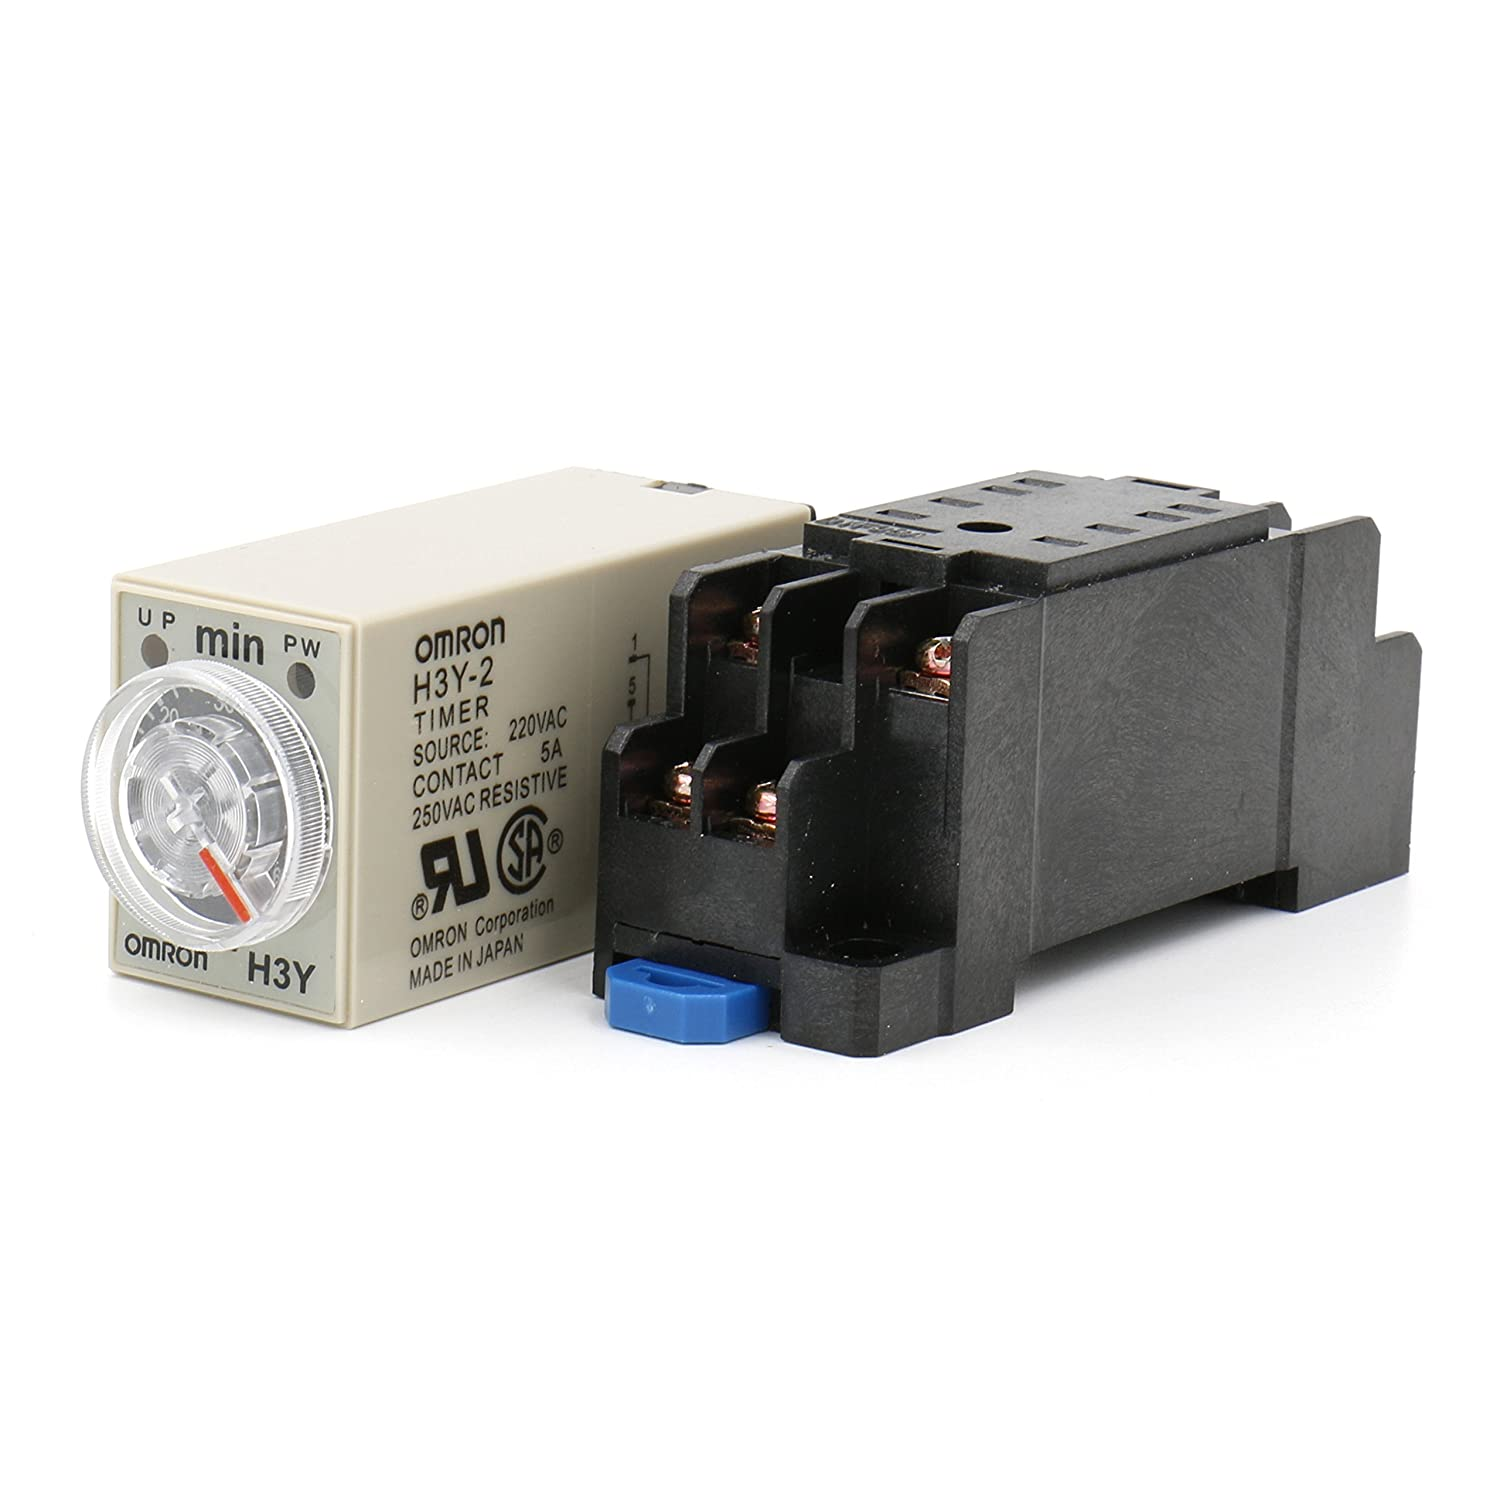 Heschen Timer Delay Relay H3Y-2 220VAC 0-10 Minutes 250VAC 5A 8Pin terminal DPDT with DYF08 35mm DIN Rail Socket Base Heschen Electric Co.Ltd H3Y-2-220V-10M